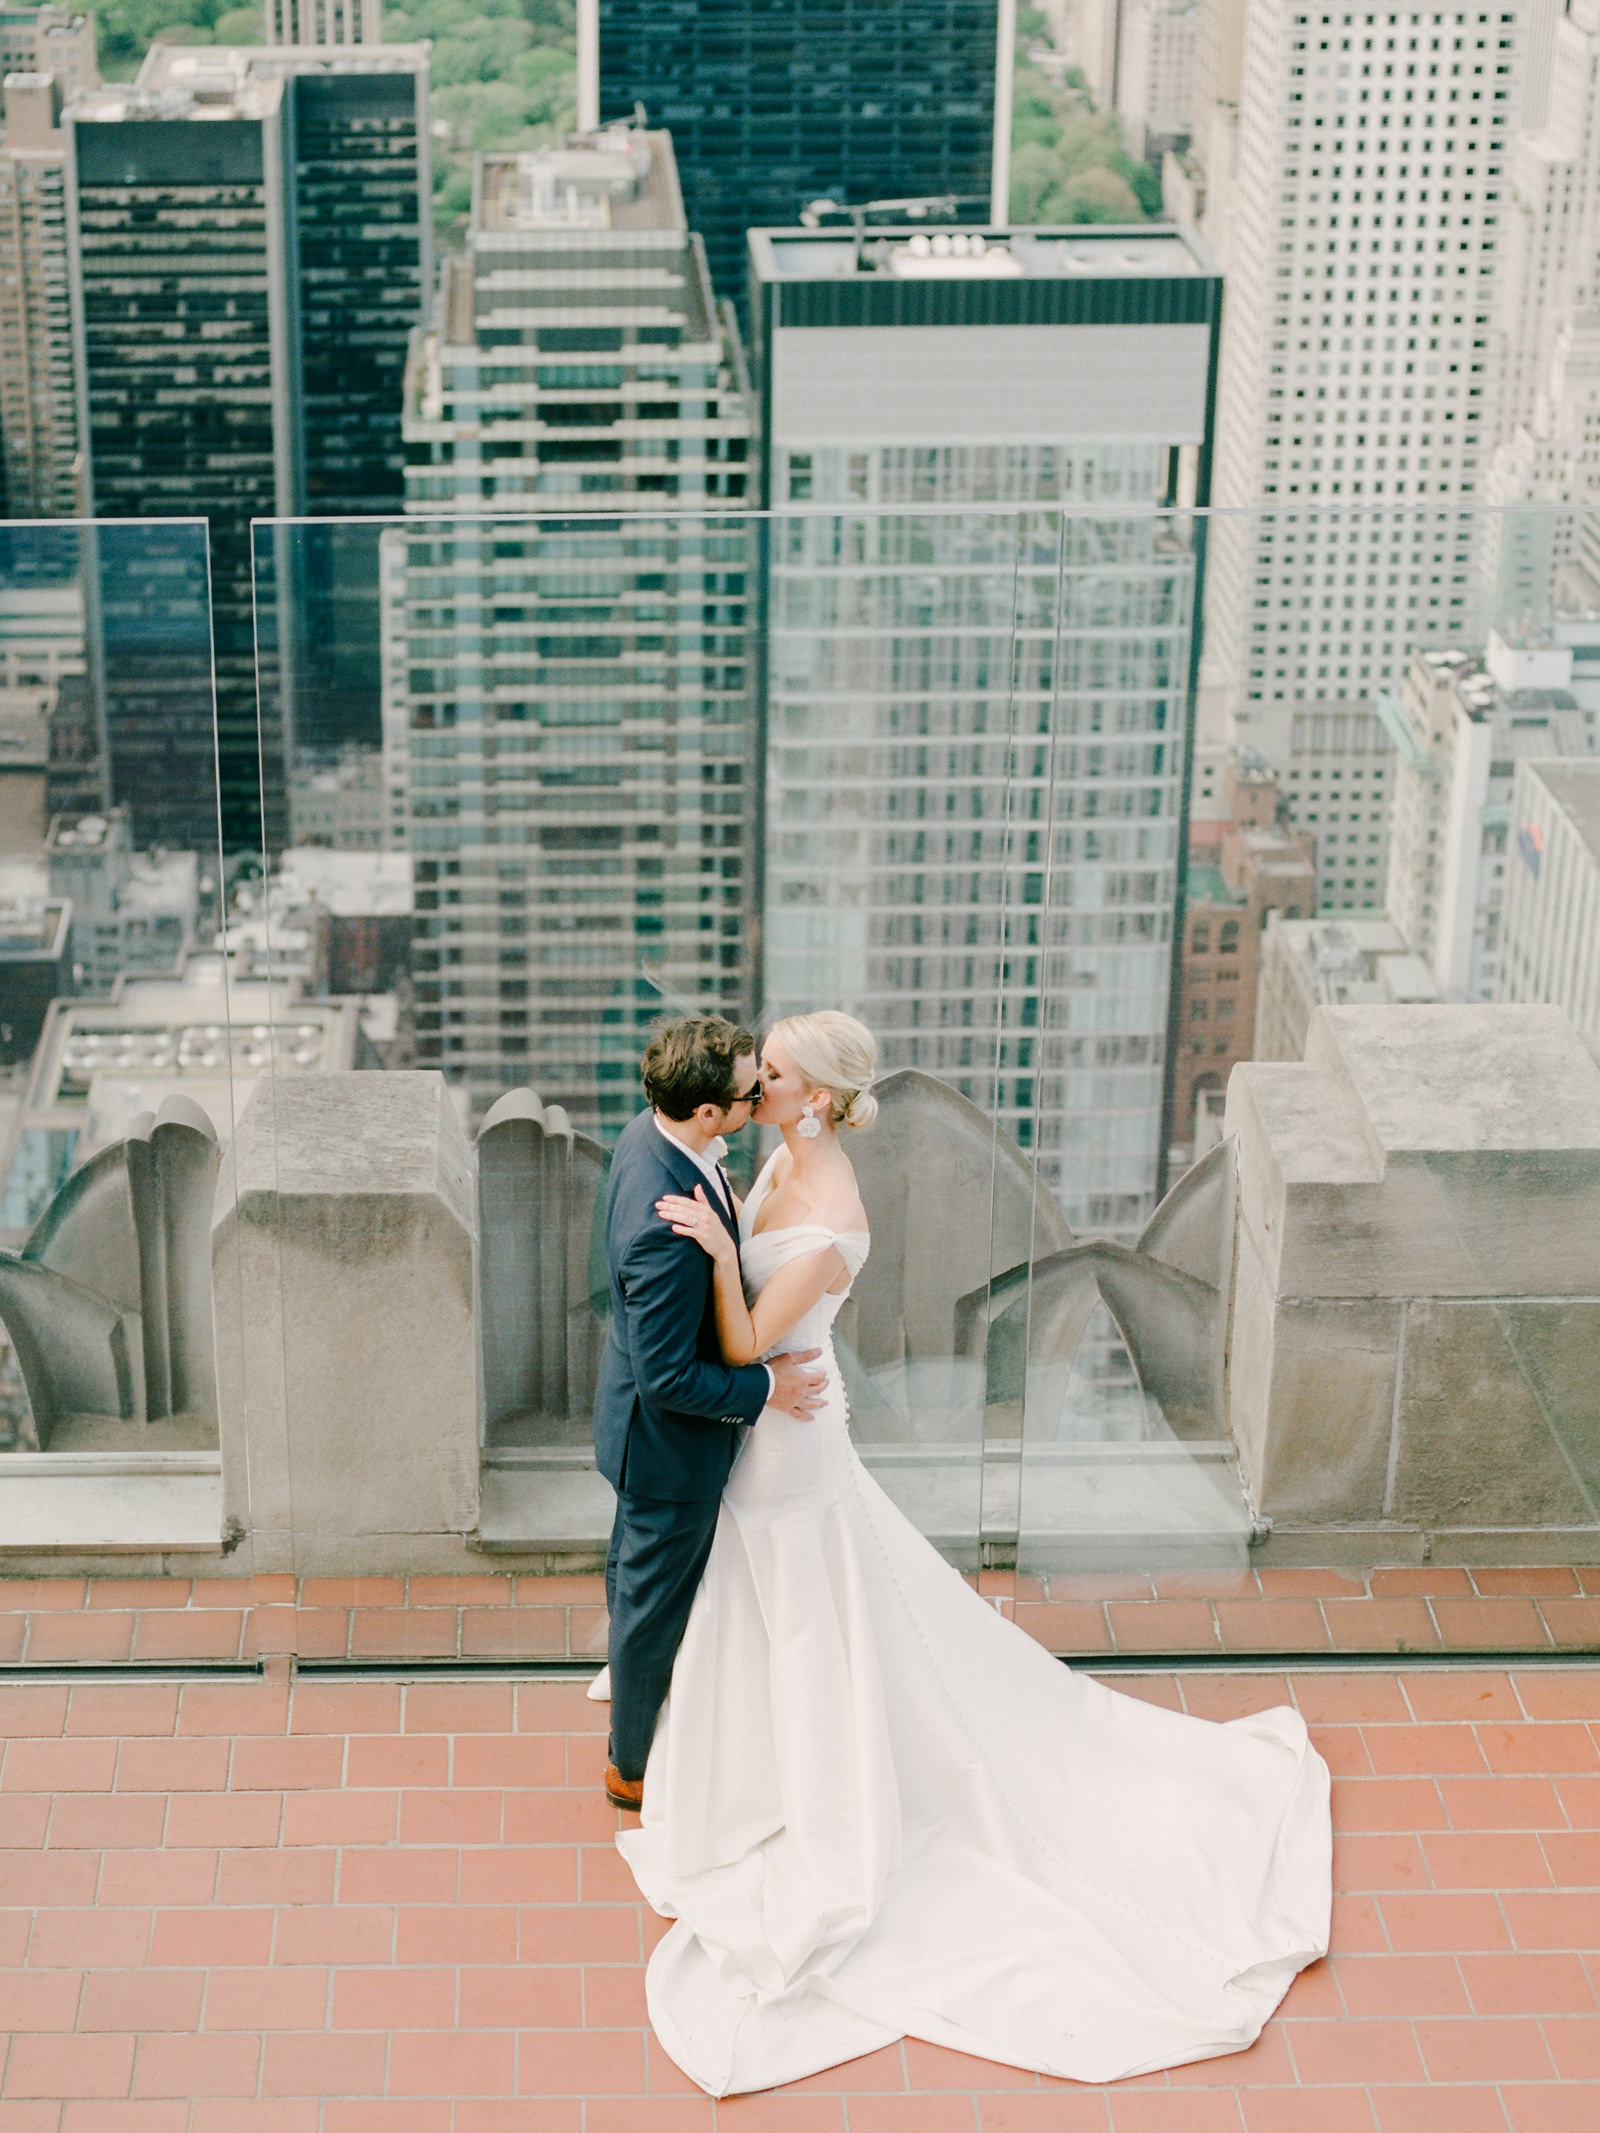 Intimate-NYC_wedding_ by Tanya Isaeva-164.jpg